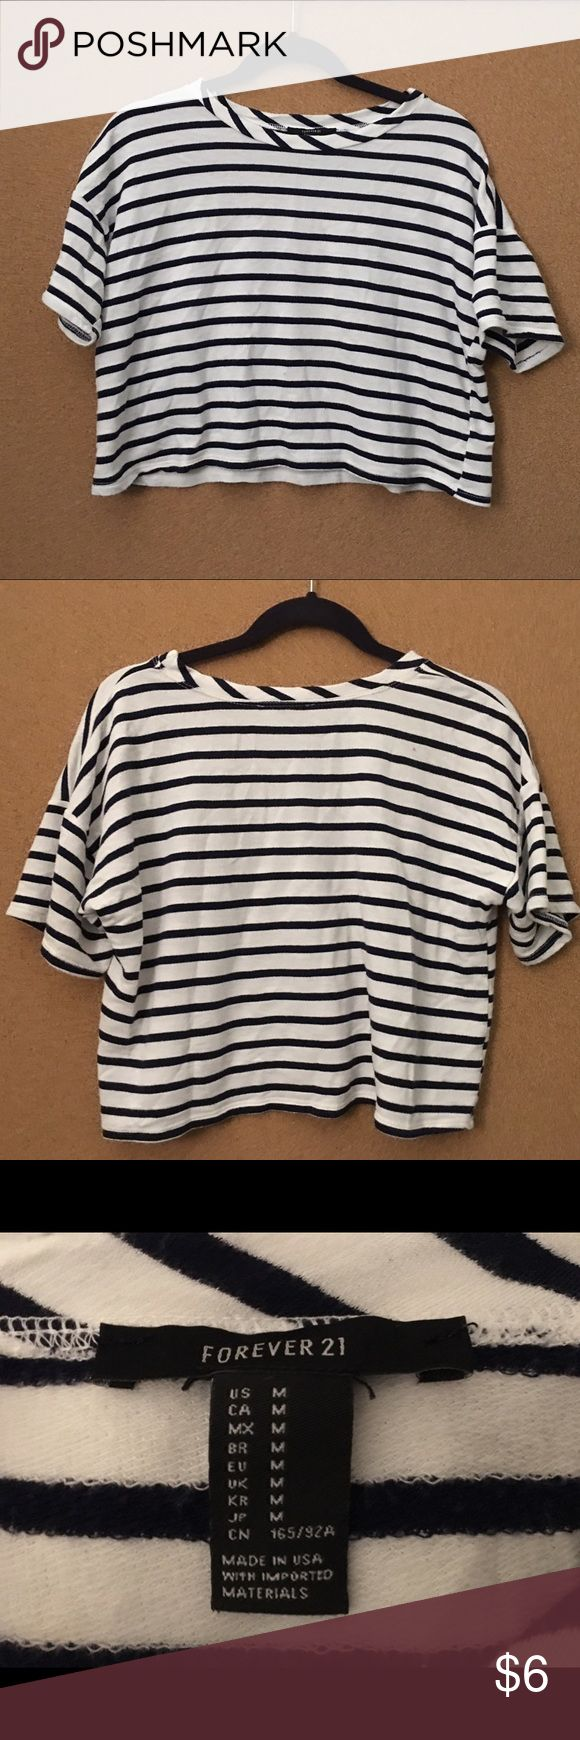 Super Soft Slouchy Stripe Crop Top This extremely soft slouchy crop top is perfect for the casual look. The stripes are navy blue and white. I can't explain how soft this shirt is! Your item will come ironed and washed to perfection. Forever 21 Tops Crop Tops